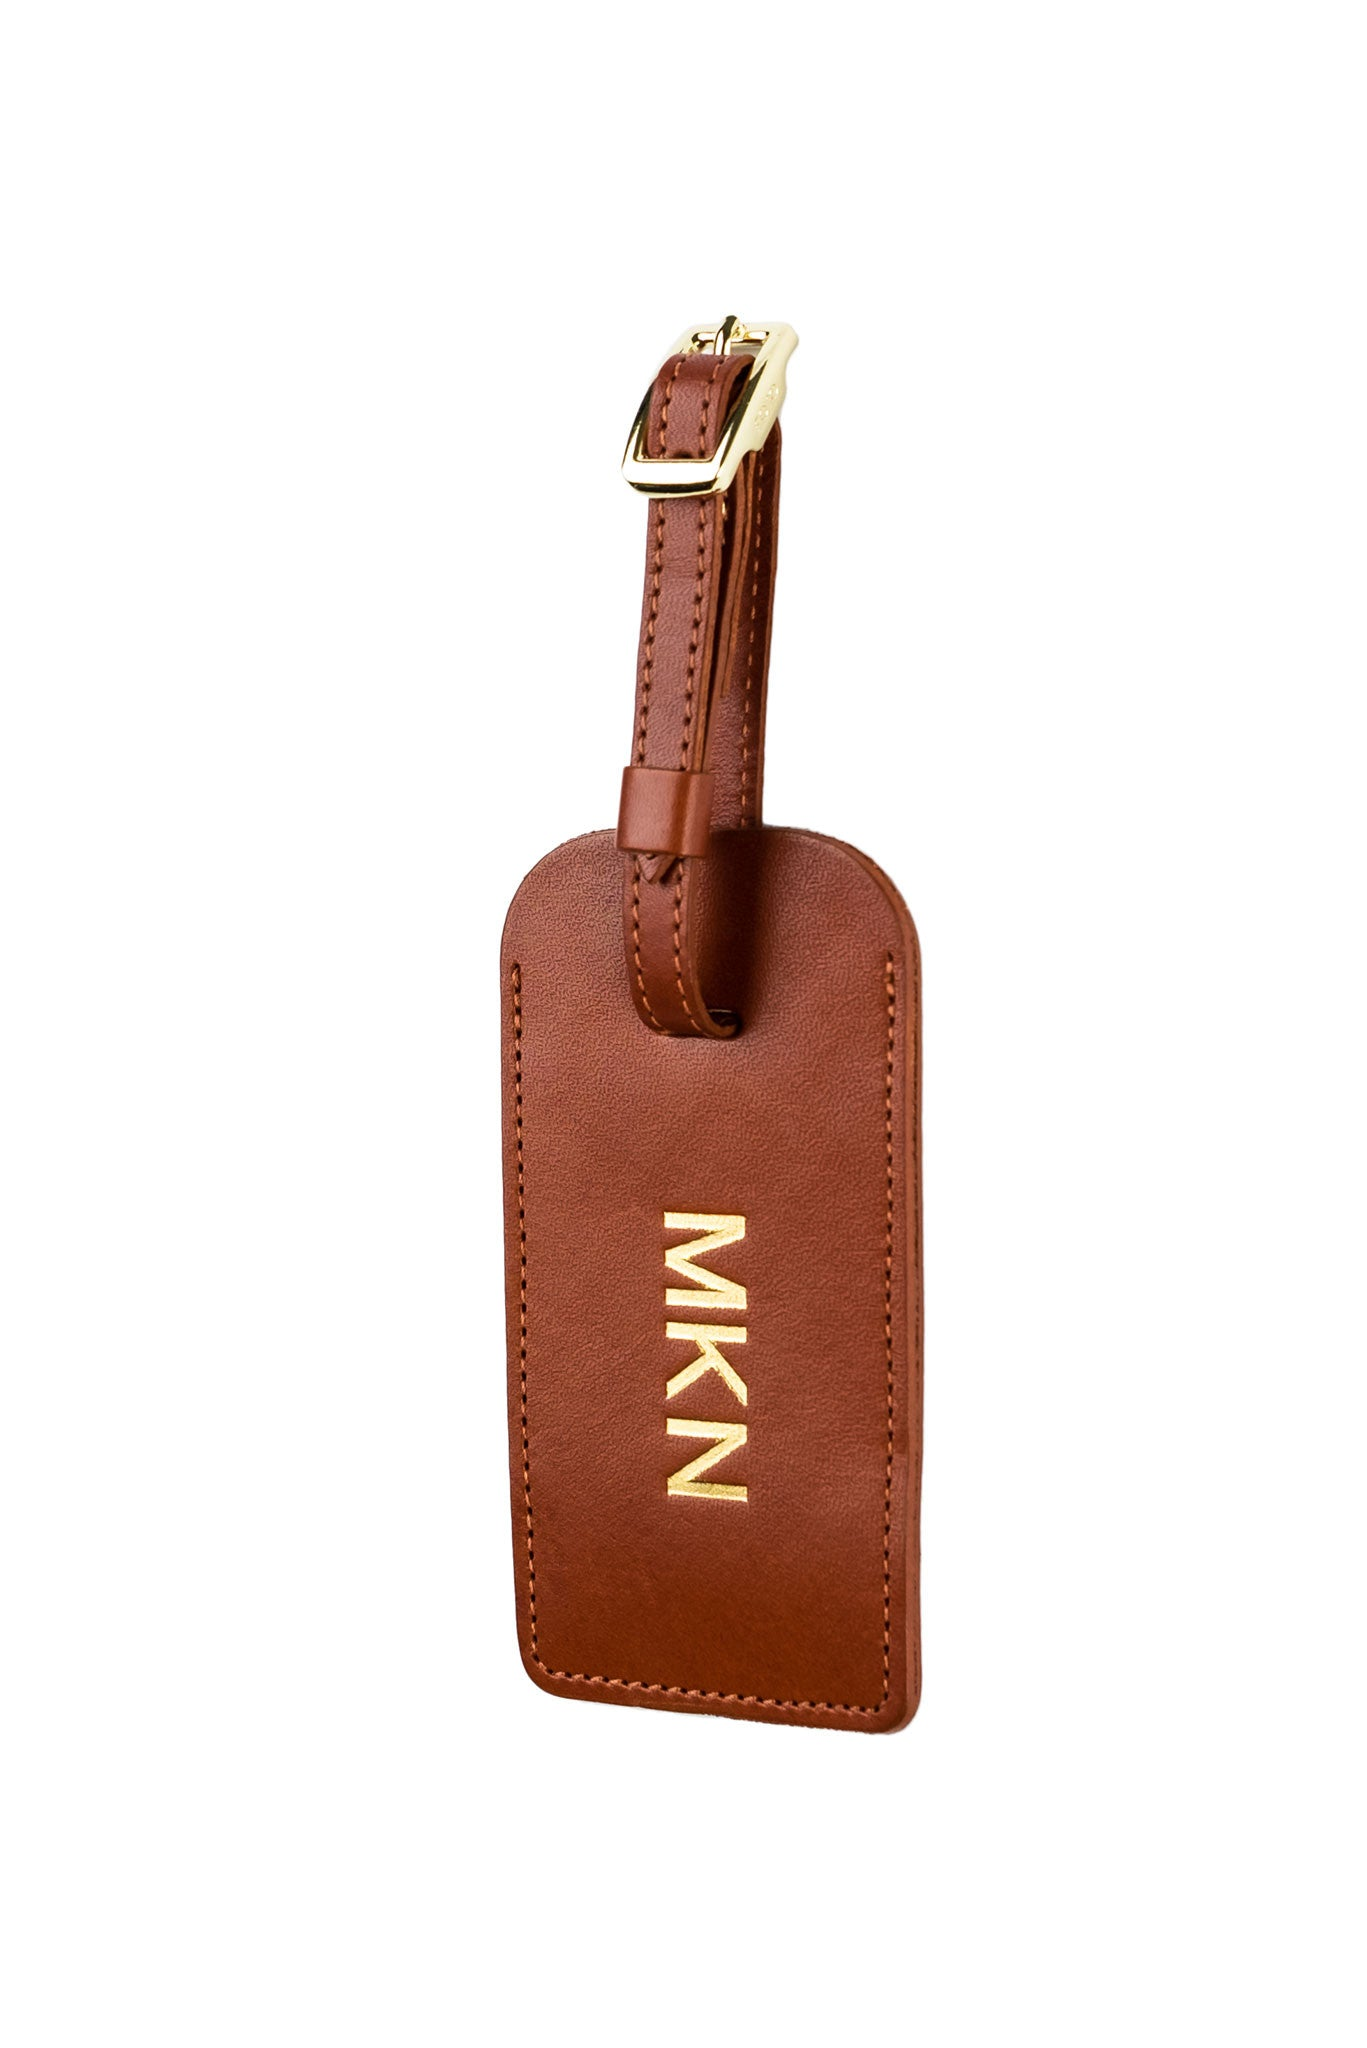 FOTO | Chestnut Leather Luggage Tag - genuine leather luggage tag that can be personalized with gold foil initials, a monogram or business logo making it the perfect personalized travel gift.